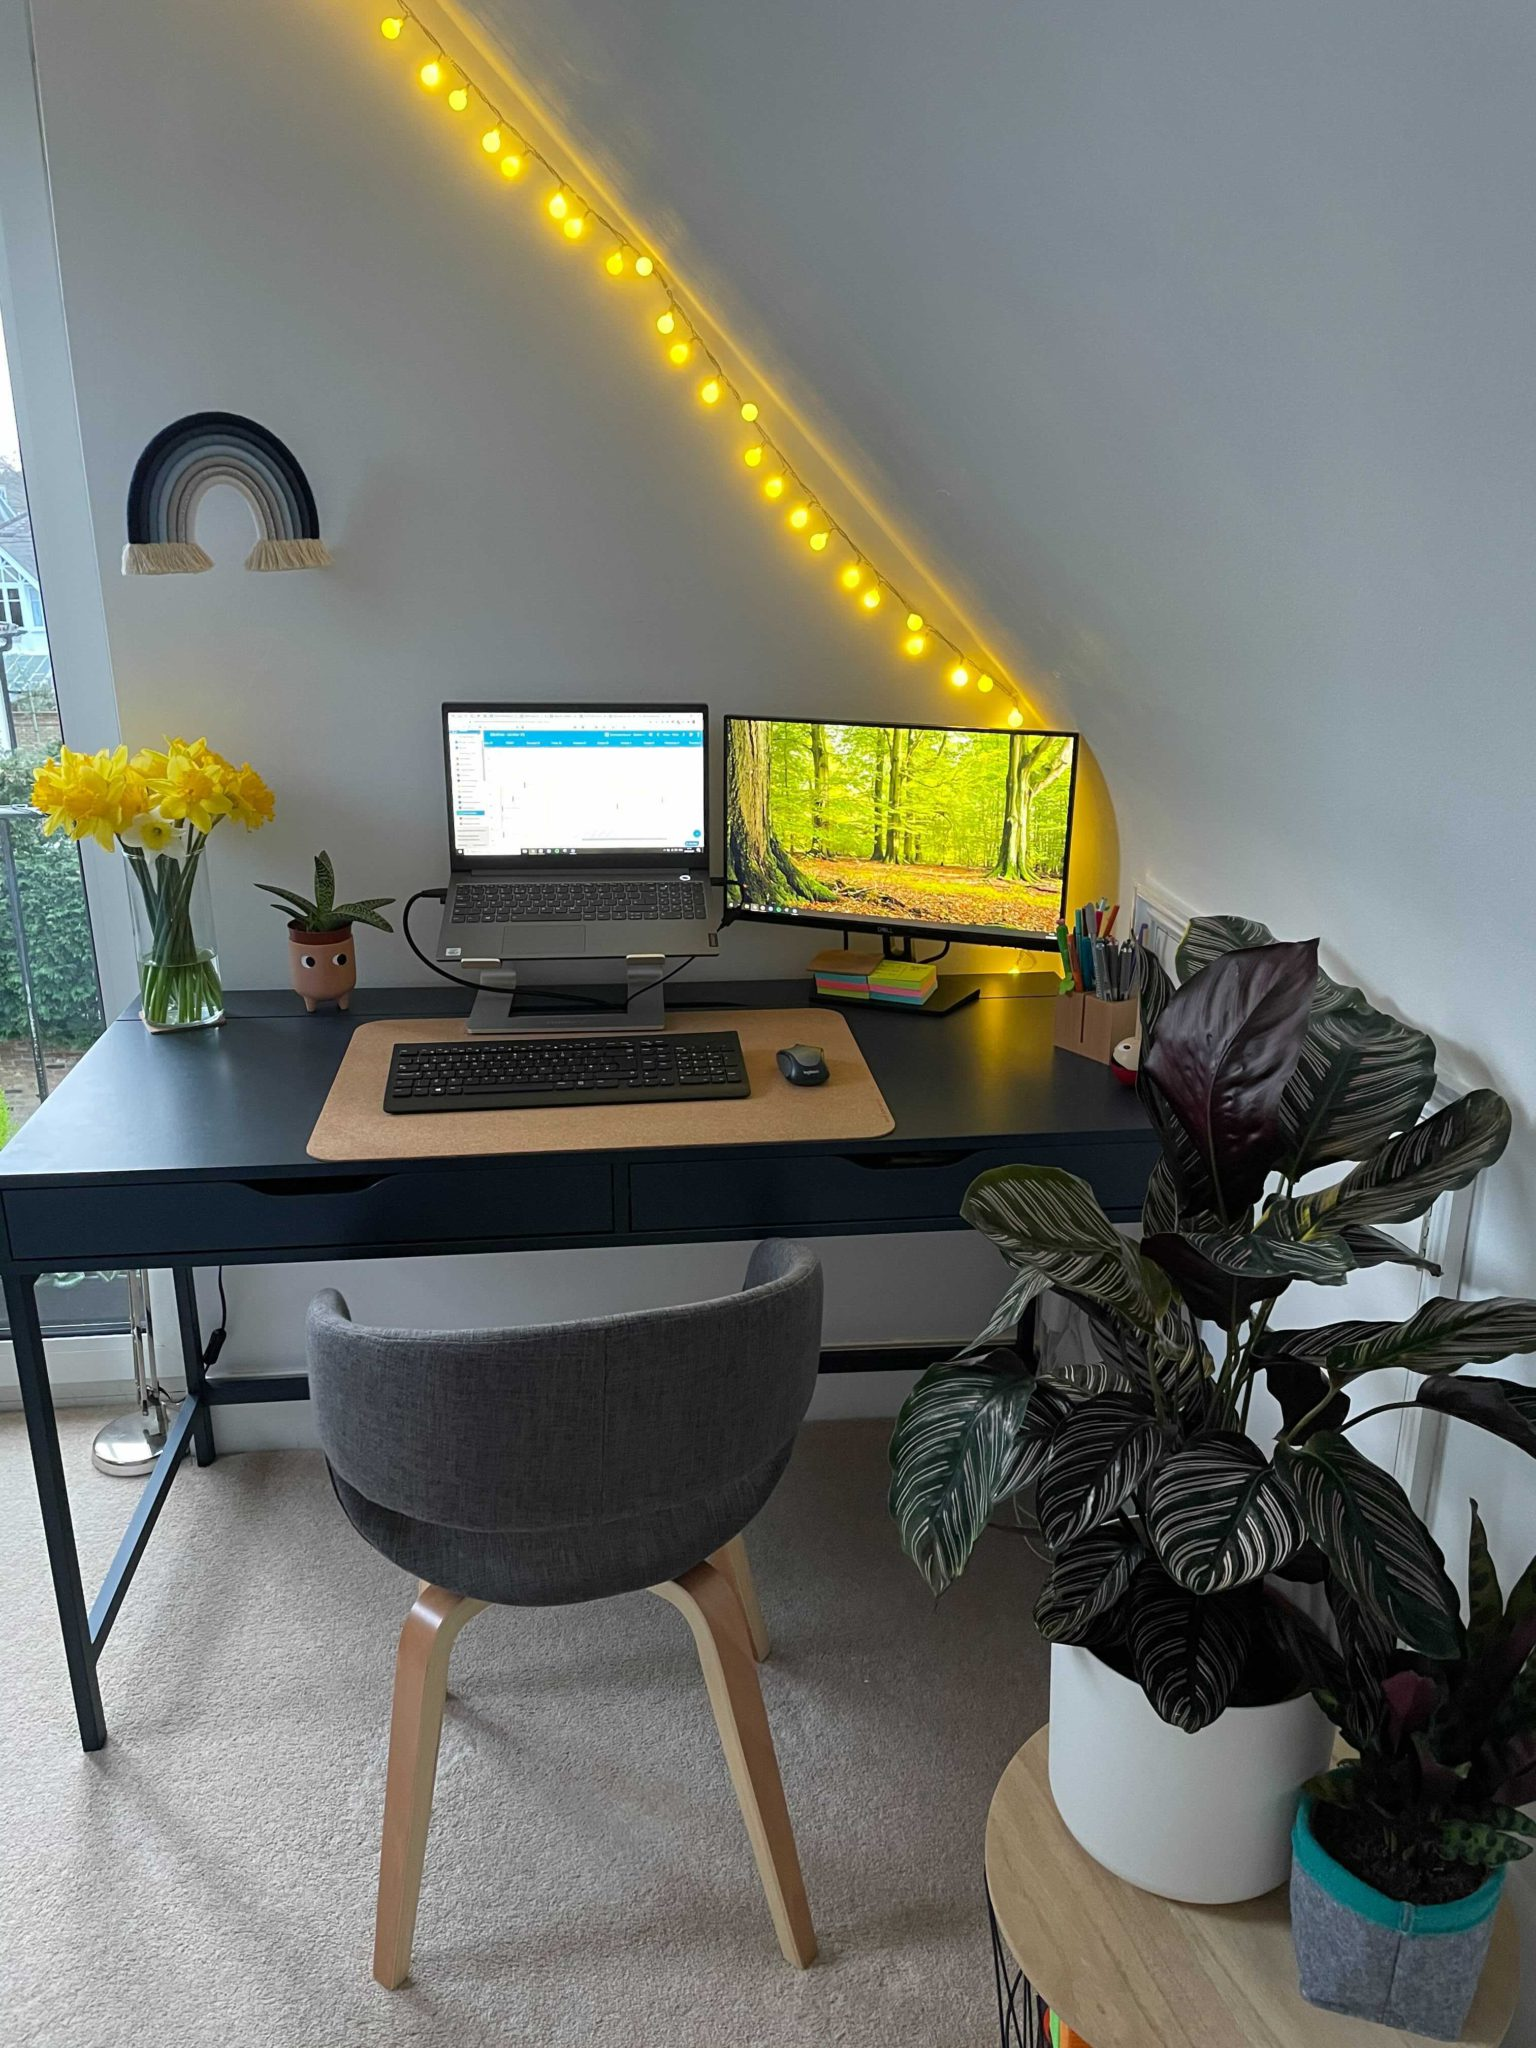 letting natural light into your home office is a great way to prevent drowsiness